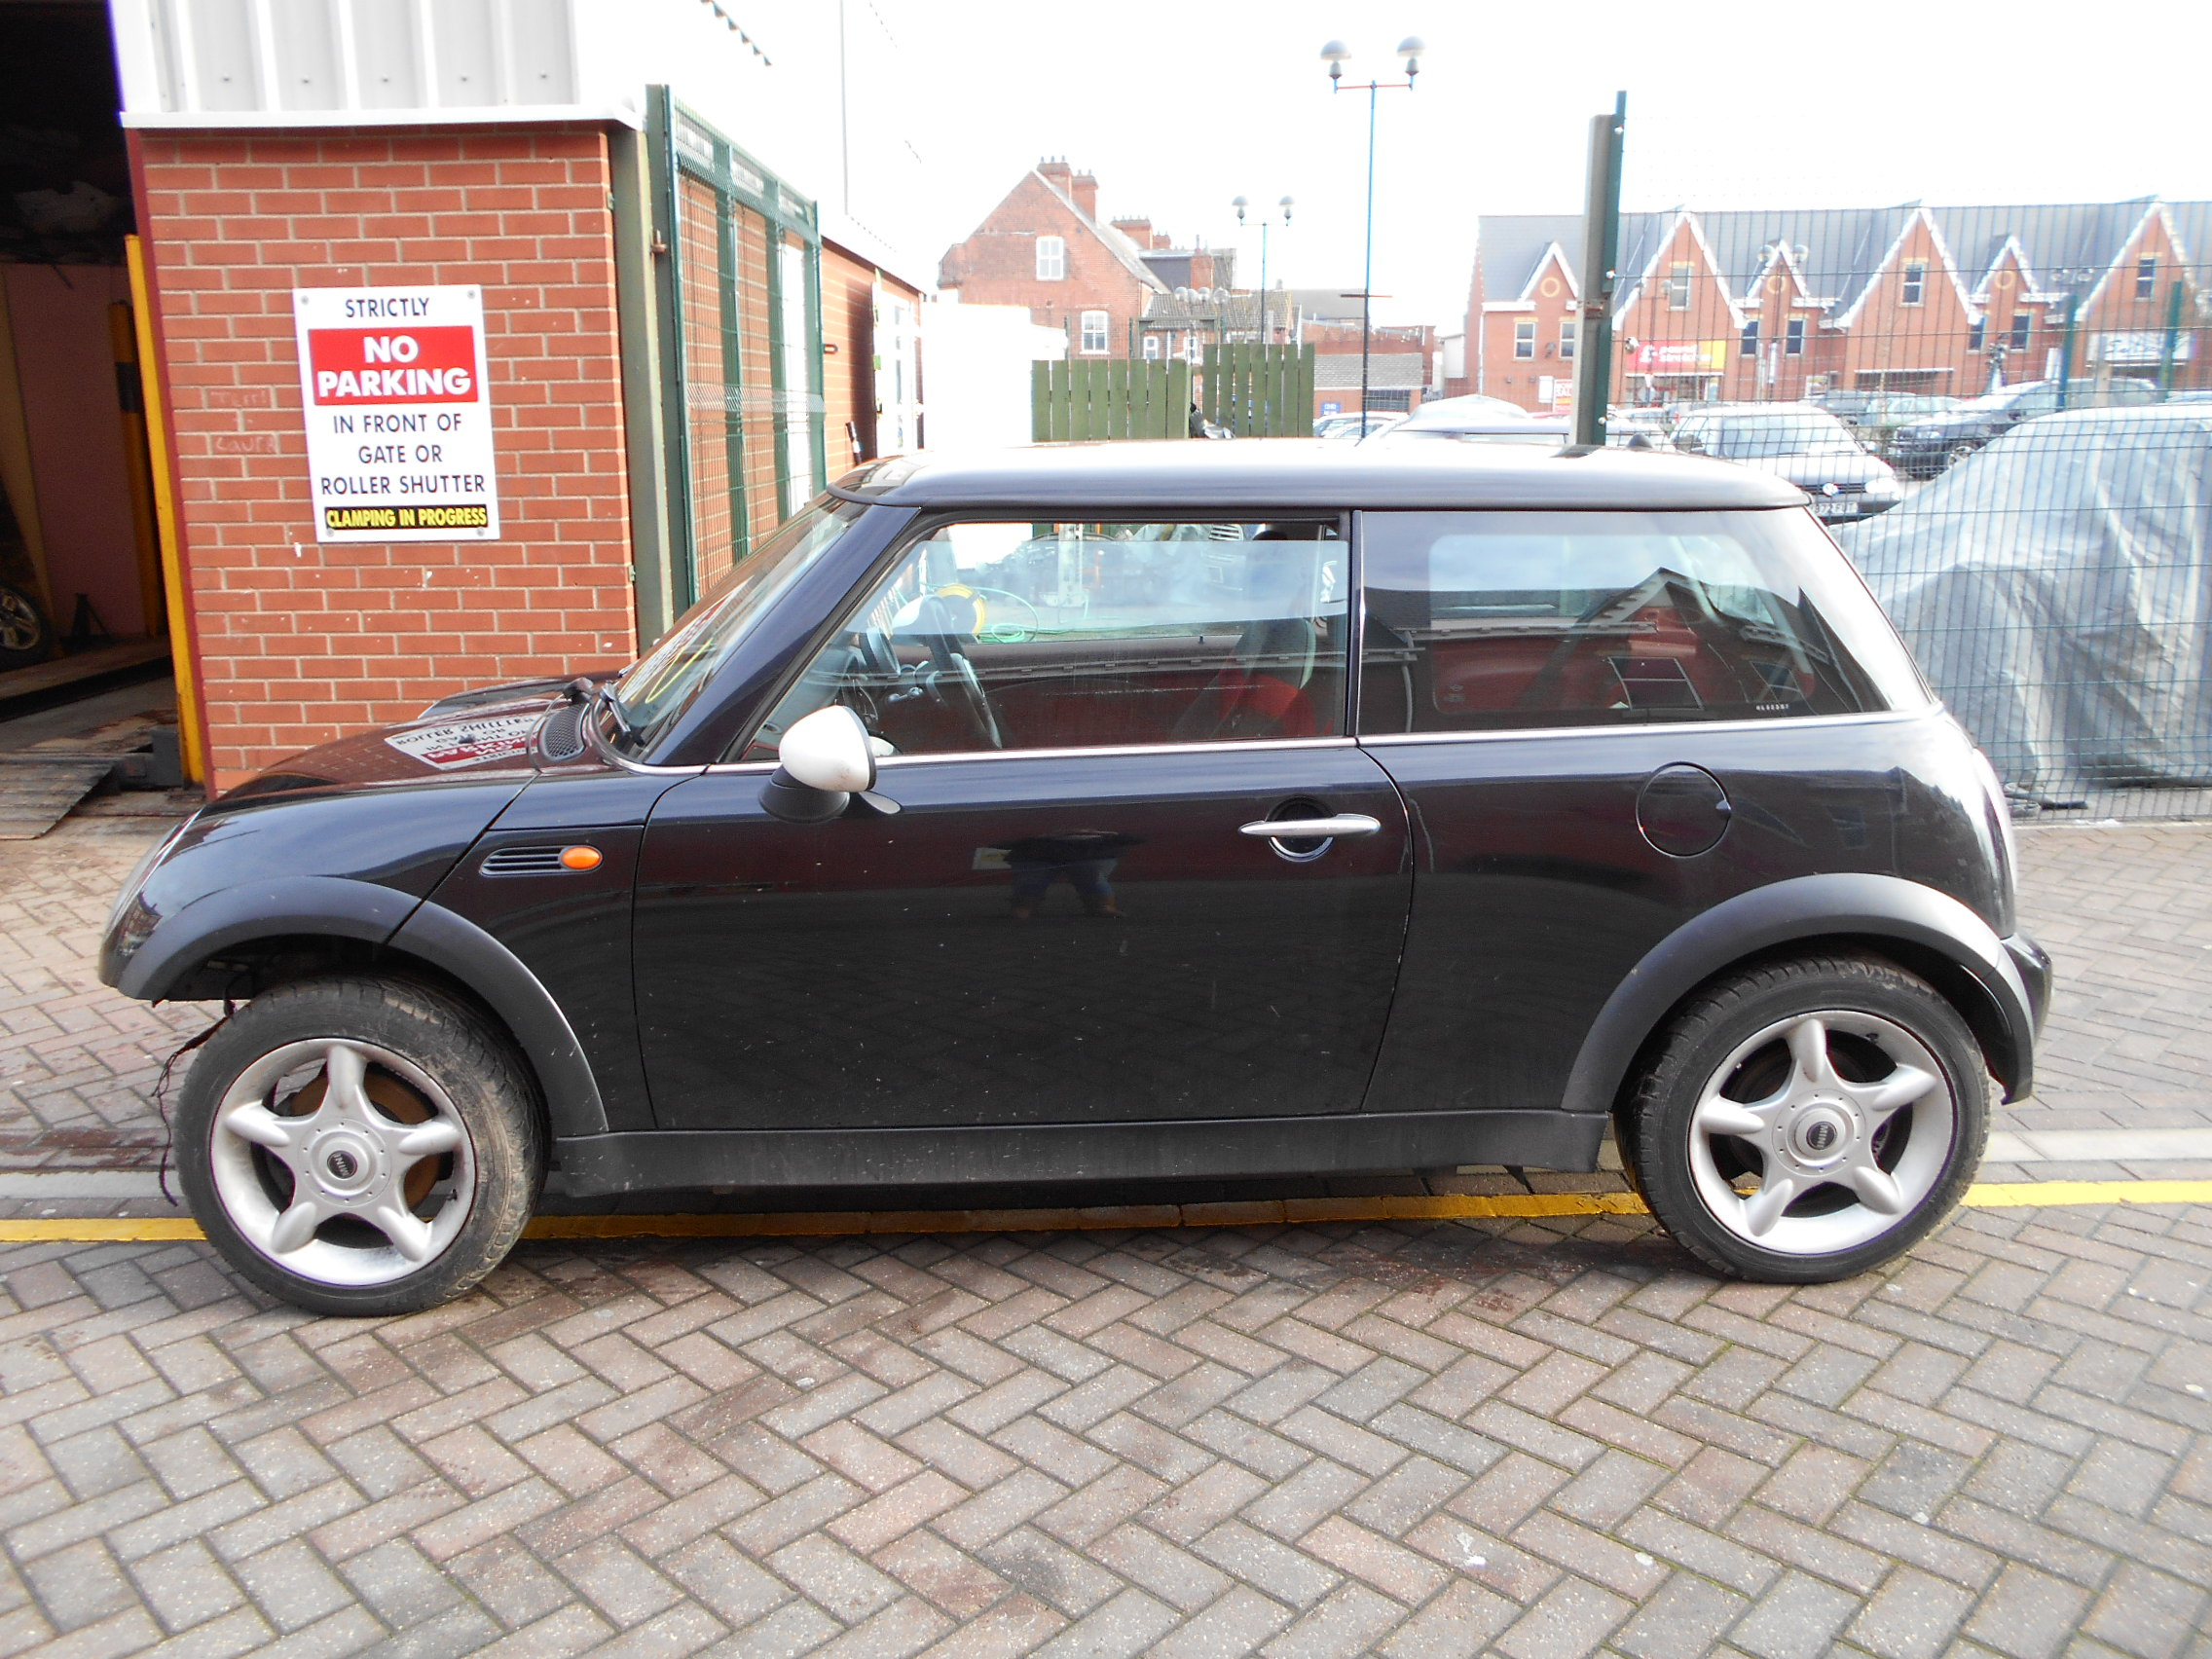 02 Black 1.6 BMW Mini One - 2